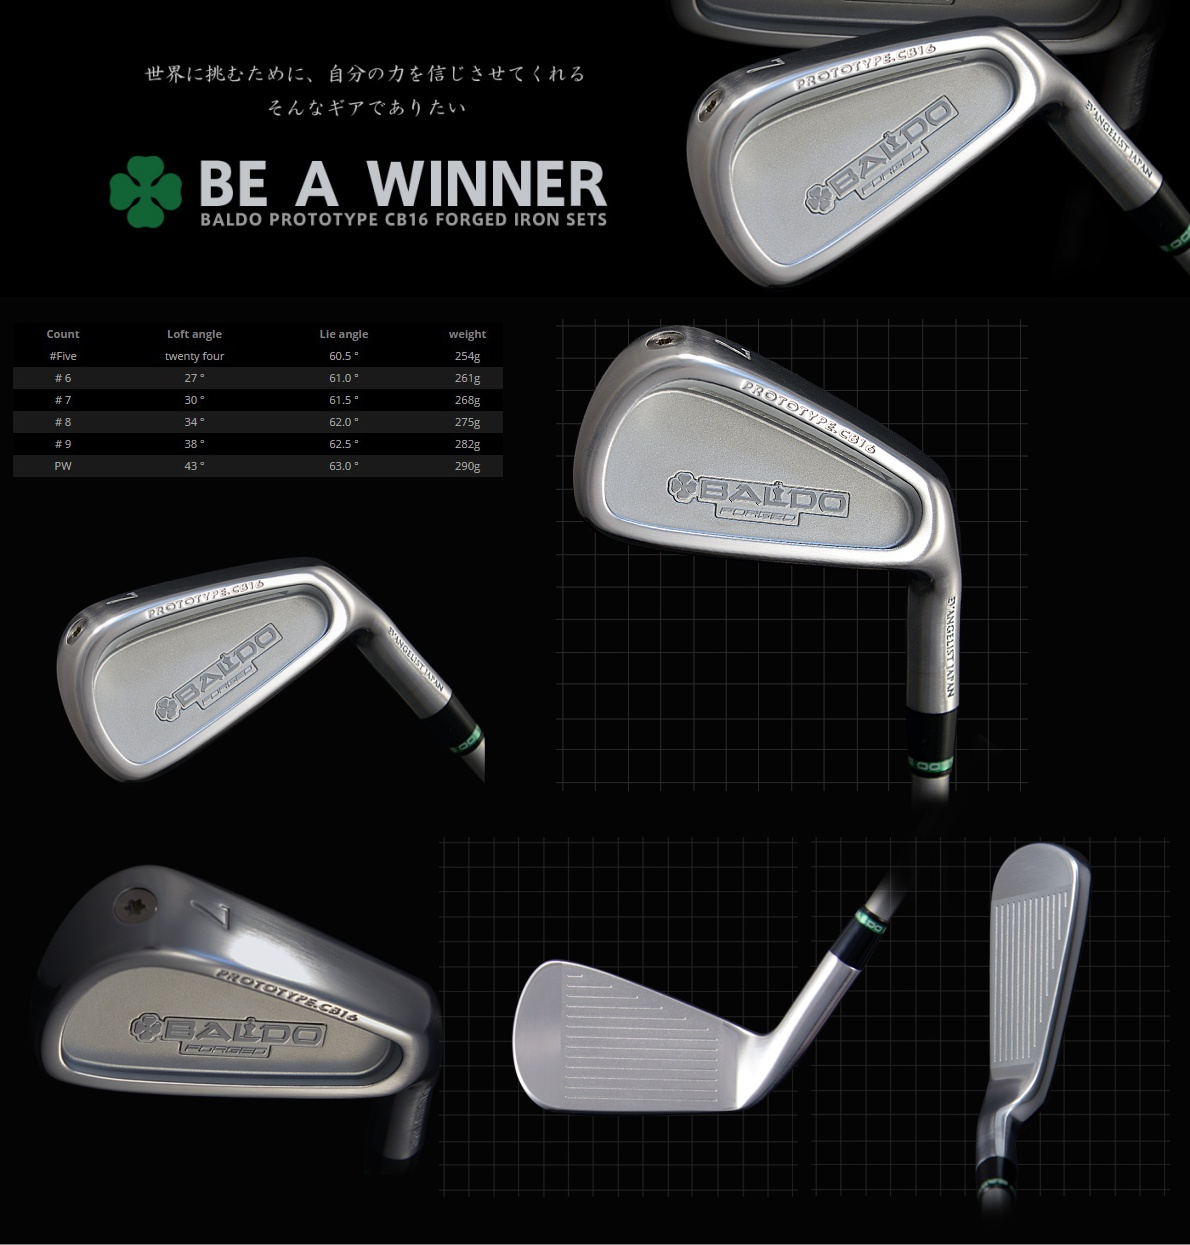 Baldo Prototype CB16 Forged Iron